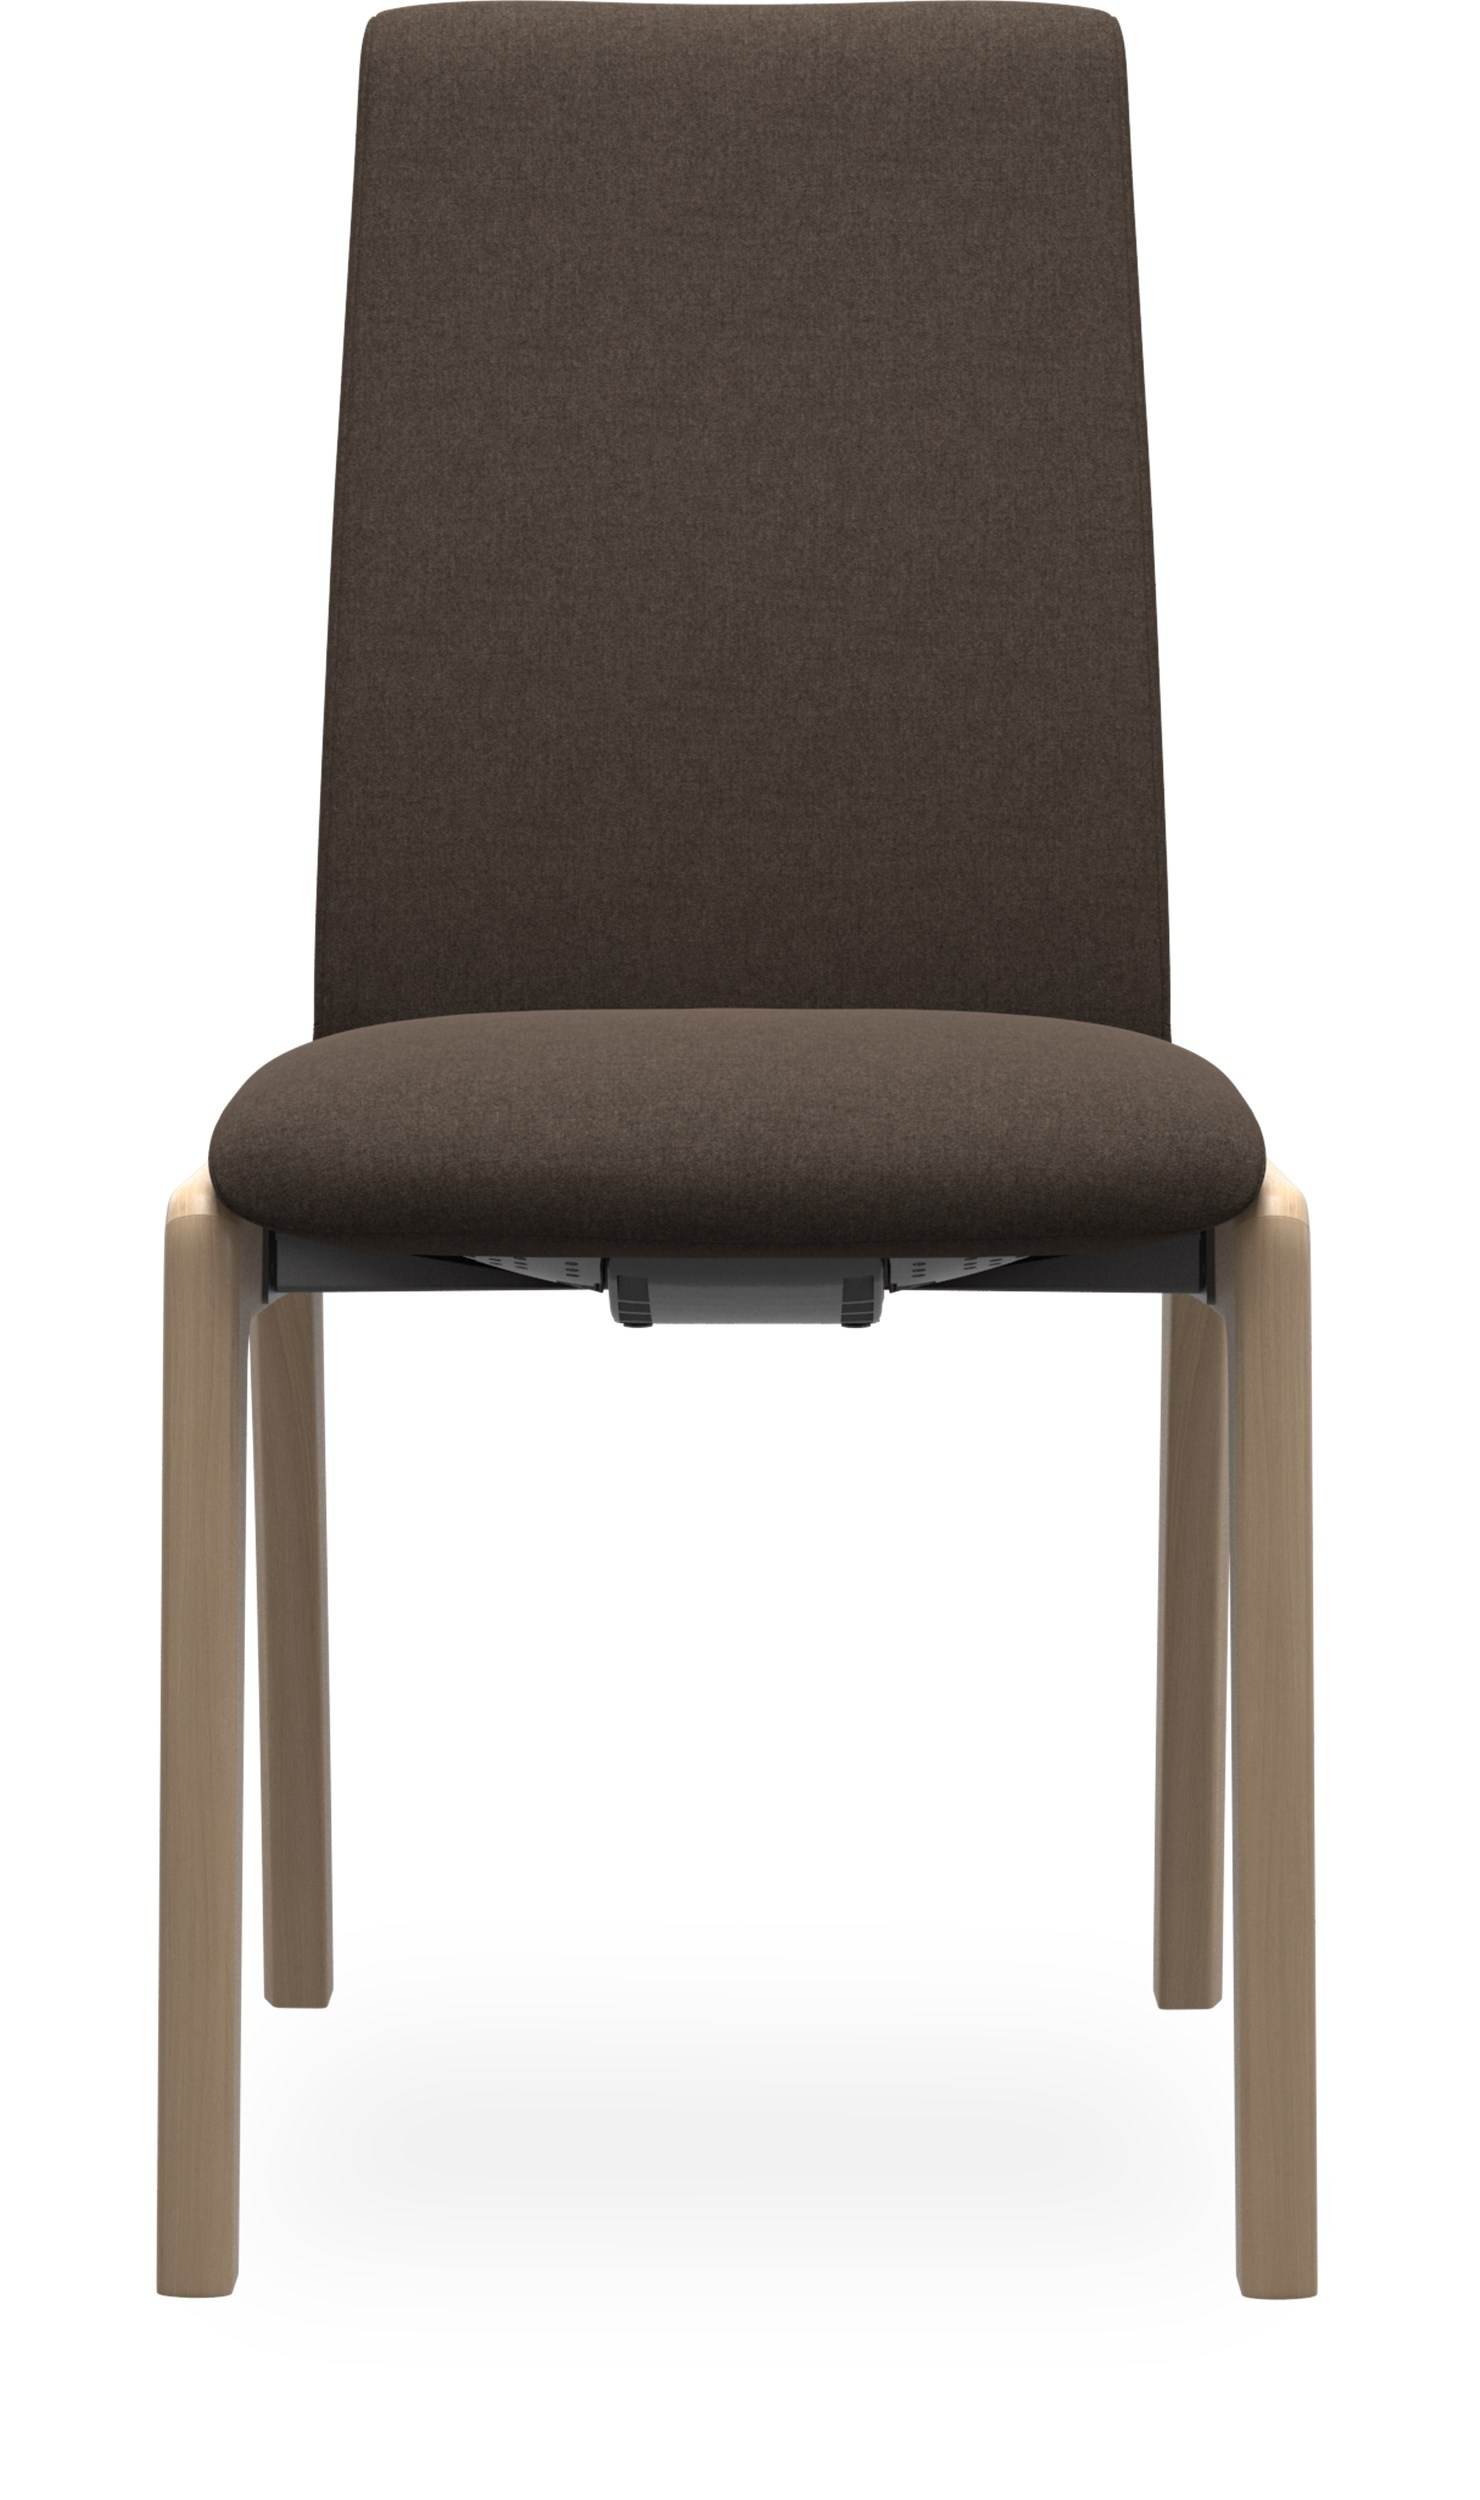 Stressless M D100 Laurel low Spisebordsstol